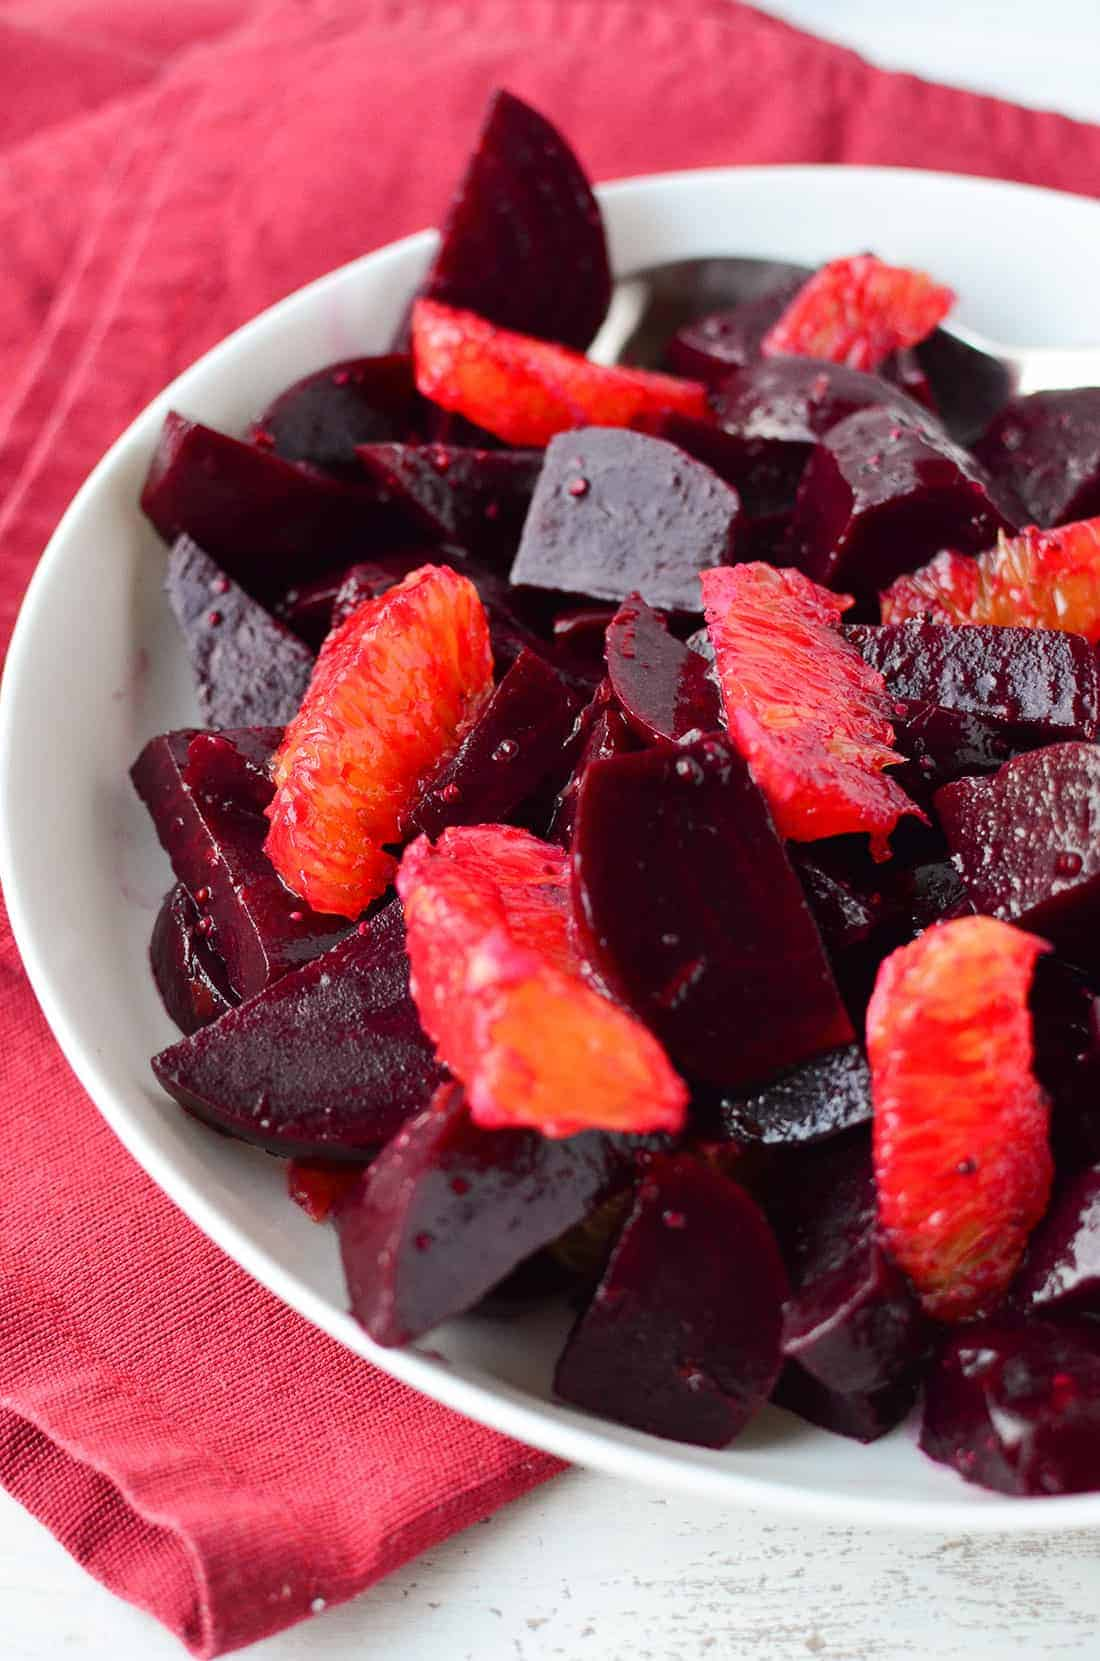 Simple winter salad! Roasted beets, orange segments in a maple-dijon dressing. #GlutenFree #Vegan | www.delishknowledge.com